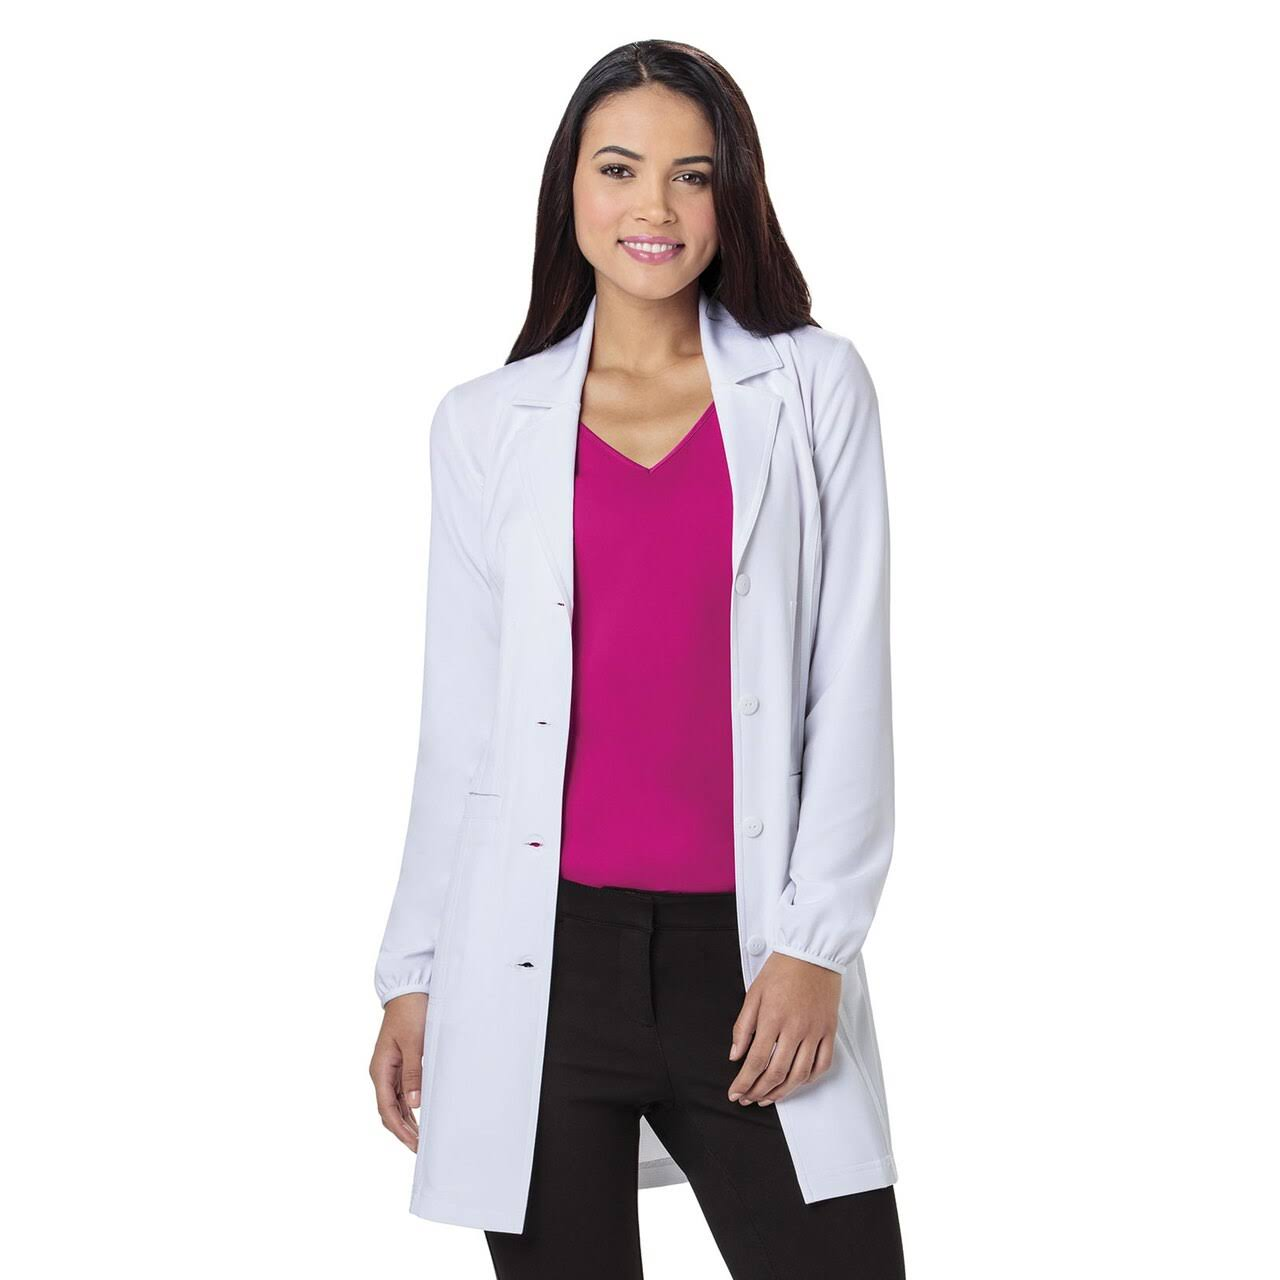 Heartsoul Labsolutely Fabulous Lab Coat - White, Medium, 34""